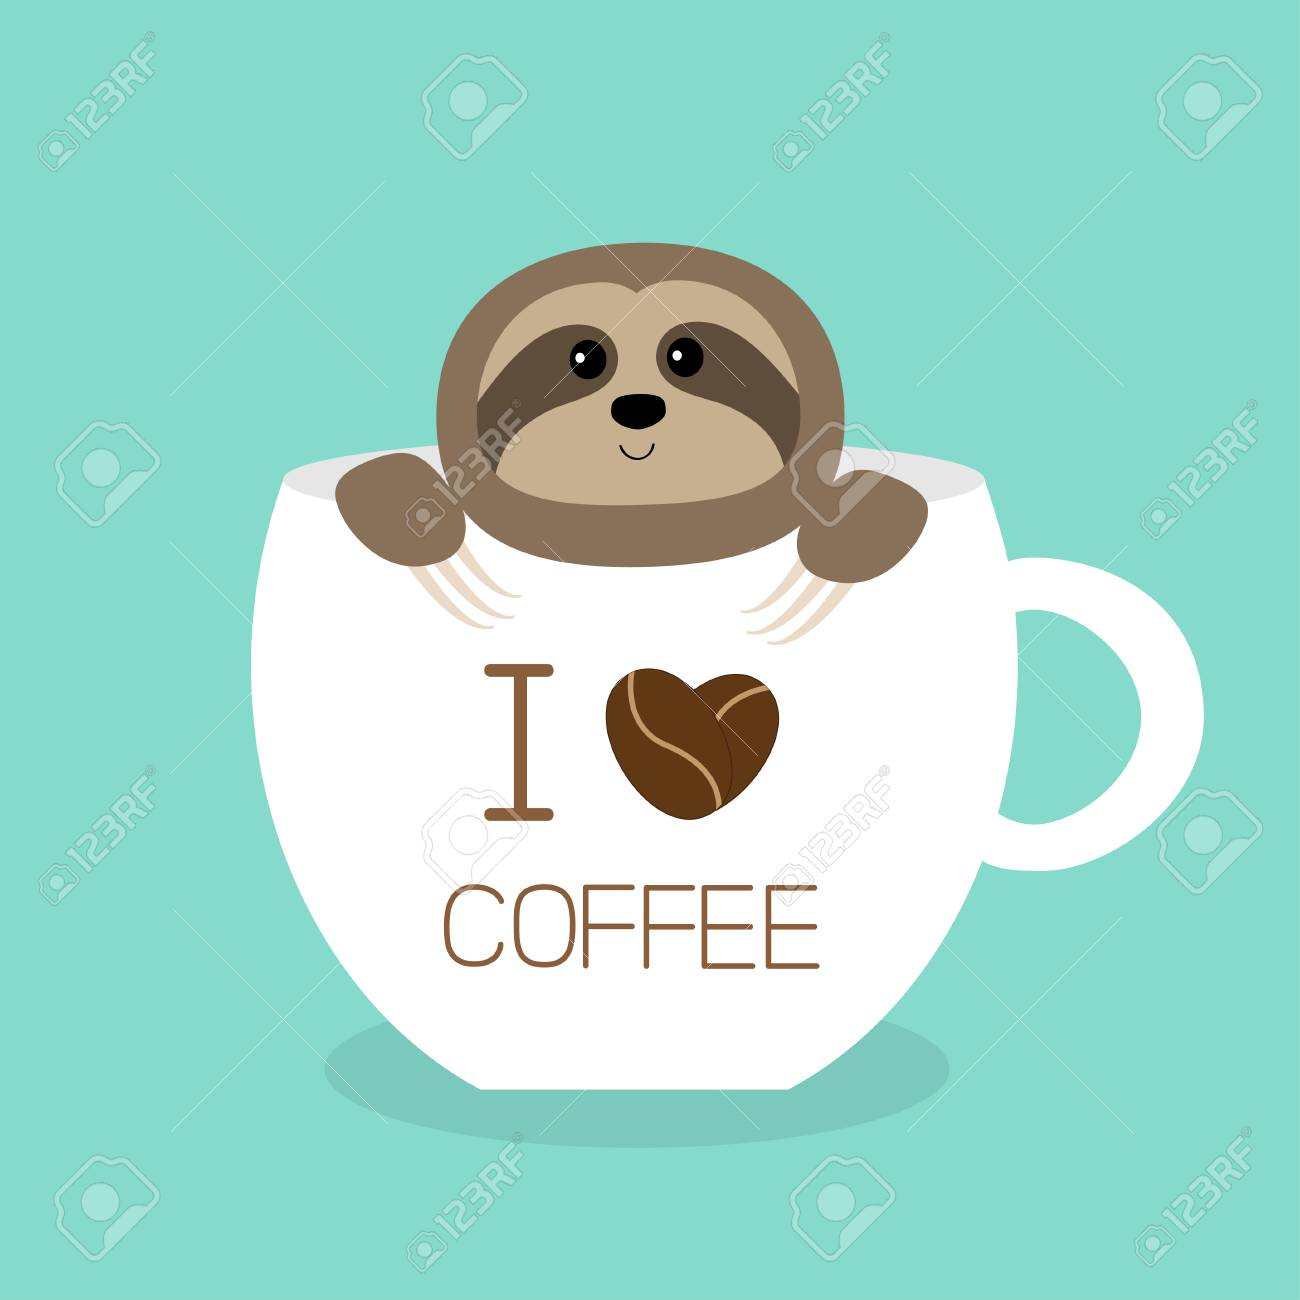 Sloth Sitting In Teacup I Love Coffee Cup Face And Hands Cute Royalty Free Cliparts Vectors And Stock Illustration Image 112305289